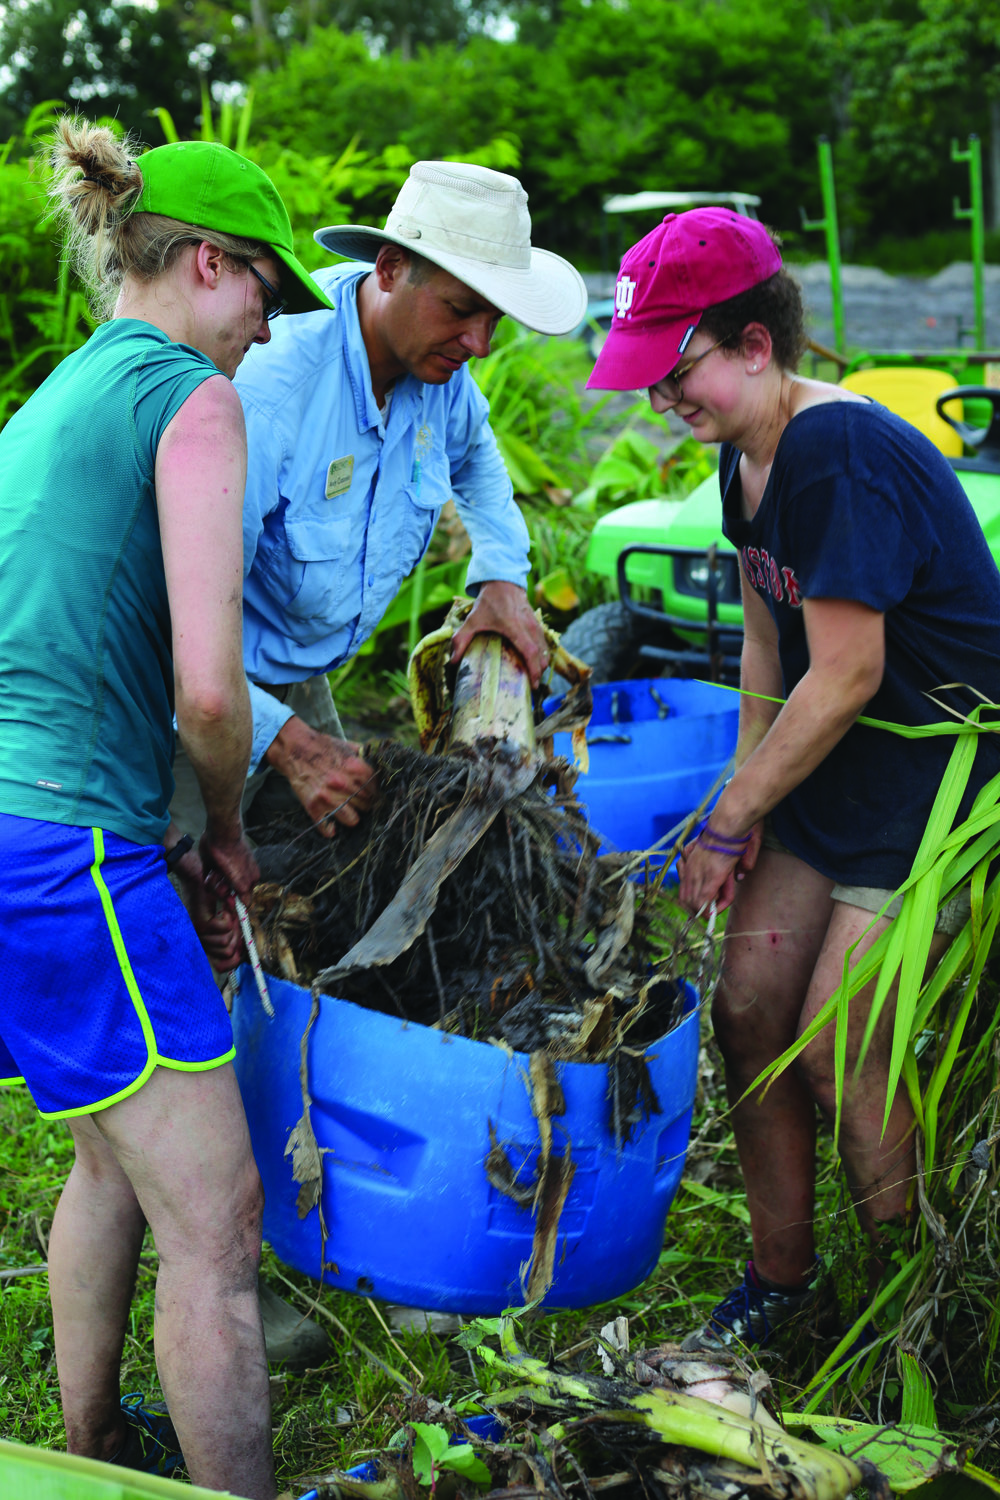 Ellen Smith (left), eight-time return volunteer from Indiana, works alongside Andy Cotarelo (center), ECHO Farm Manager, to clear a research plot at the Global Farm in North Fort Myers, Florida.